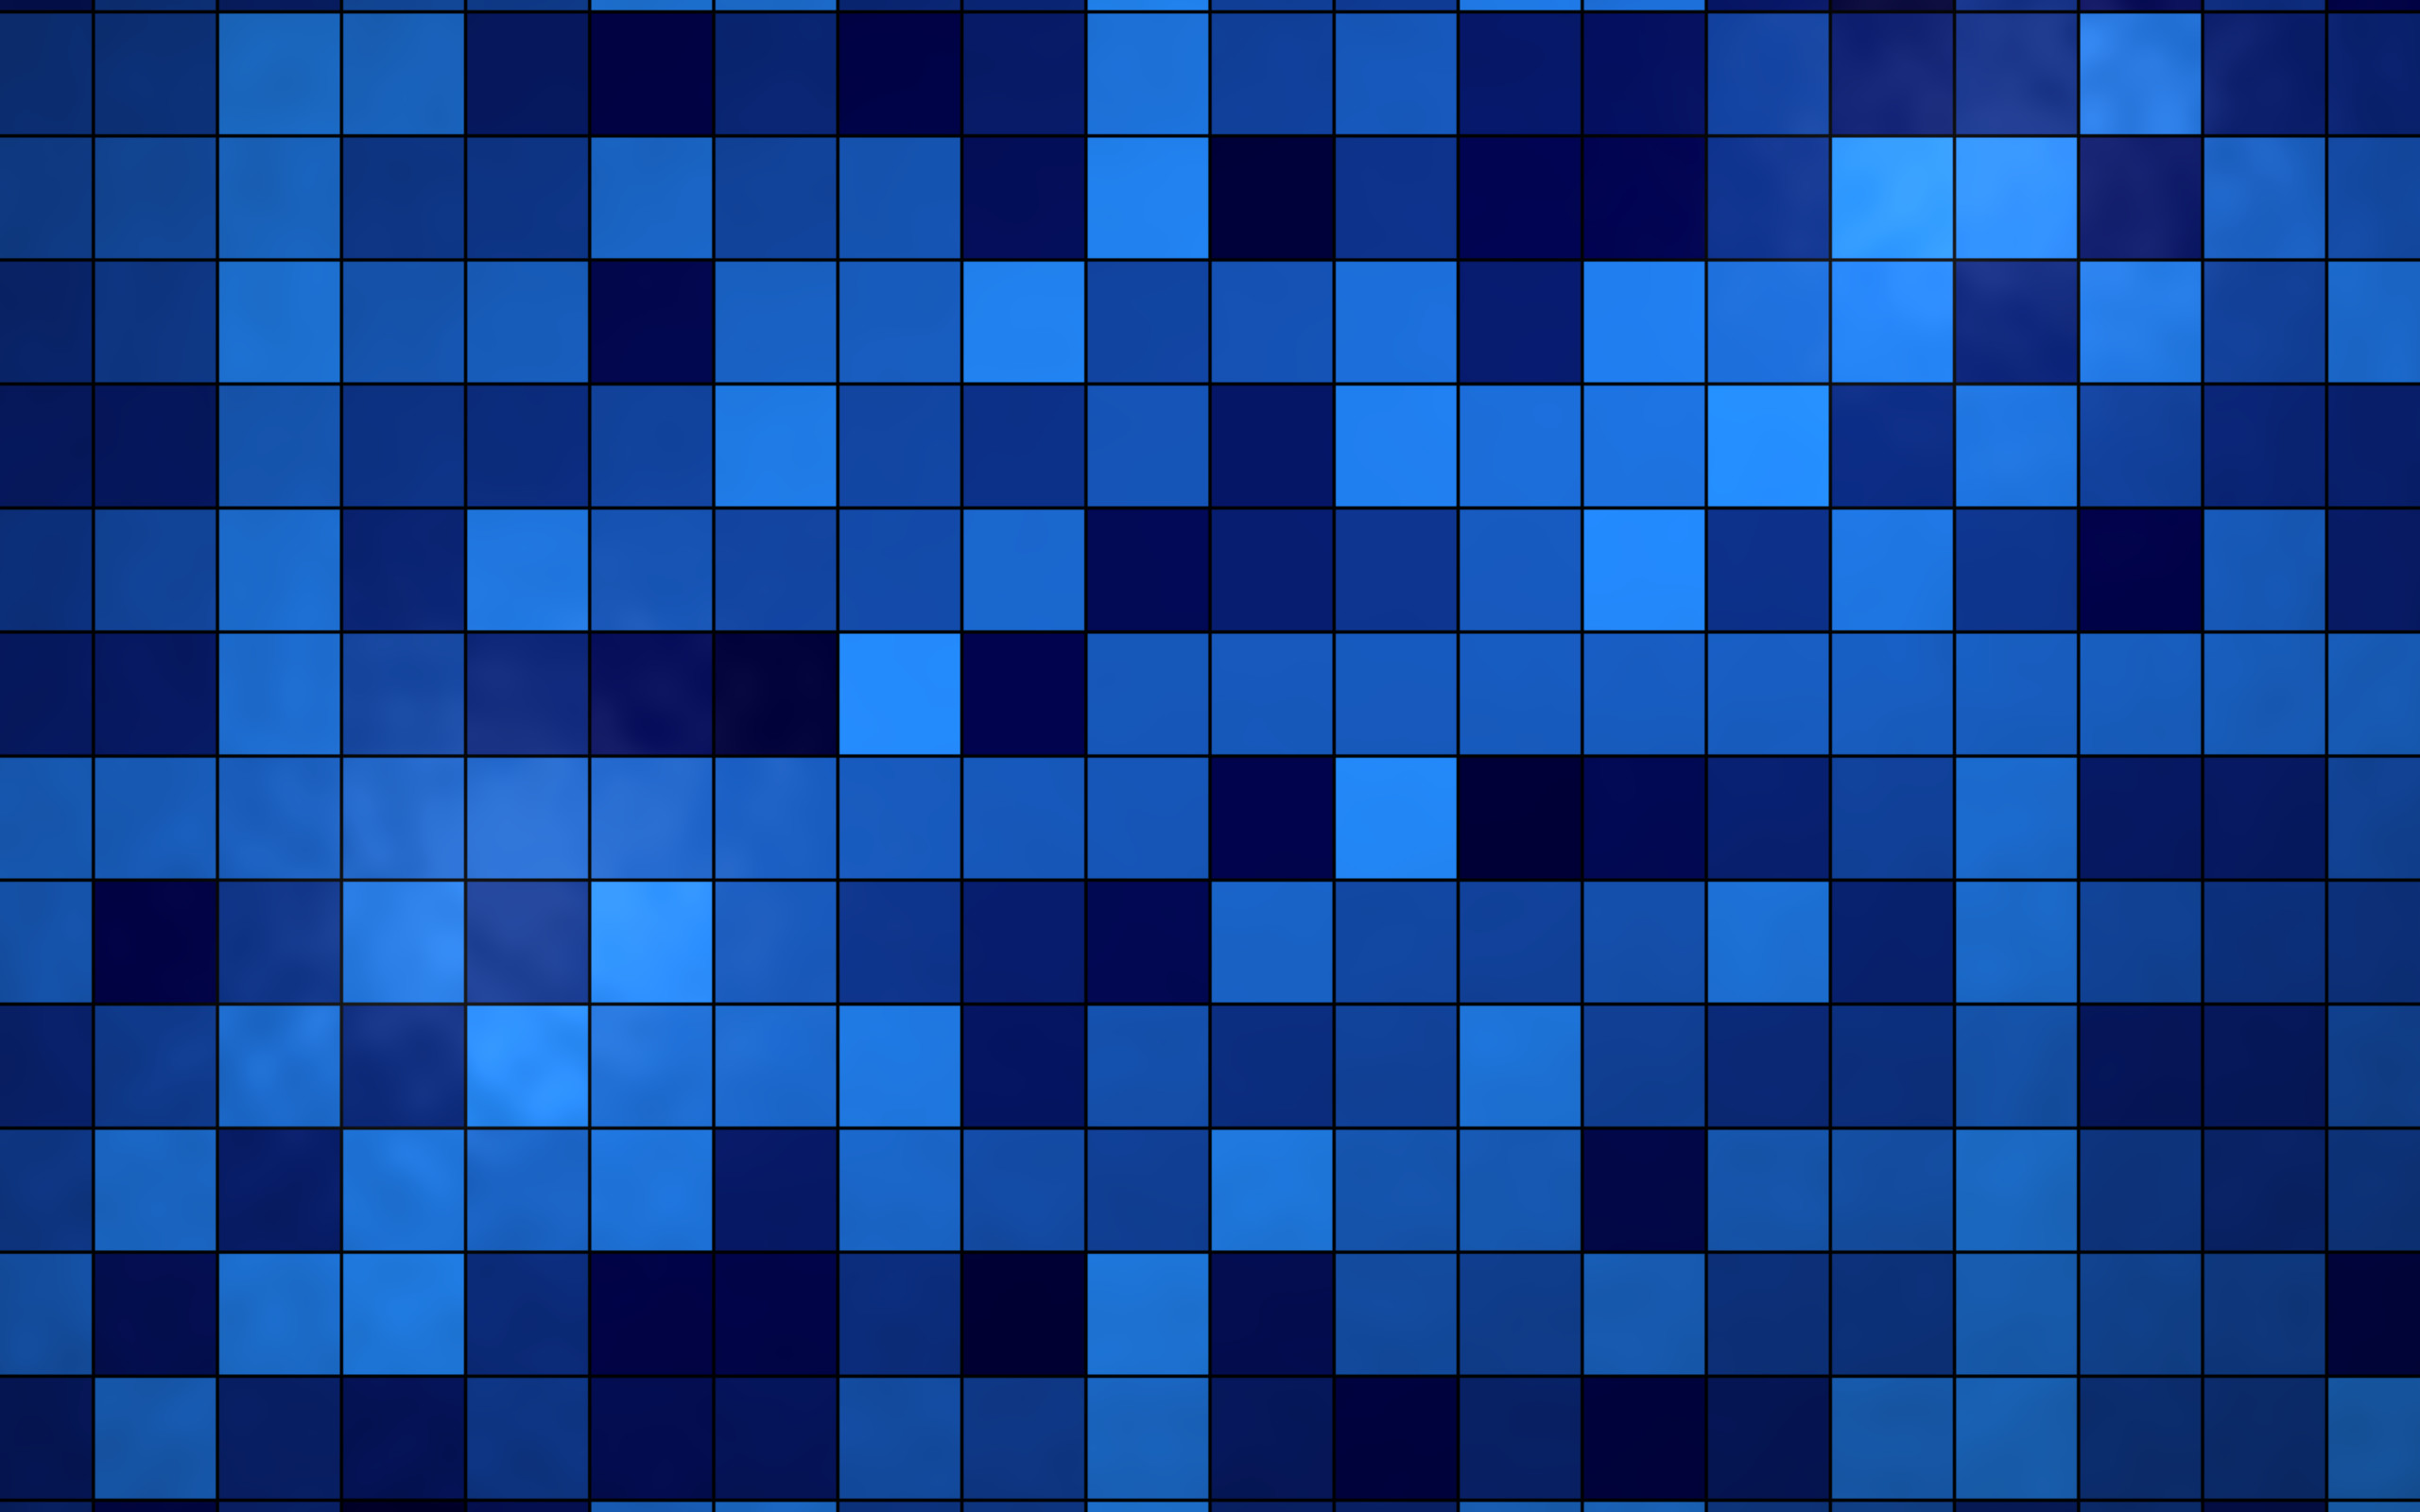 2560x1600 black and blue square wallpaper - photo #11